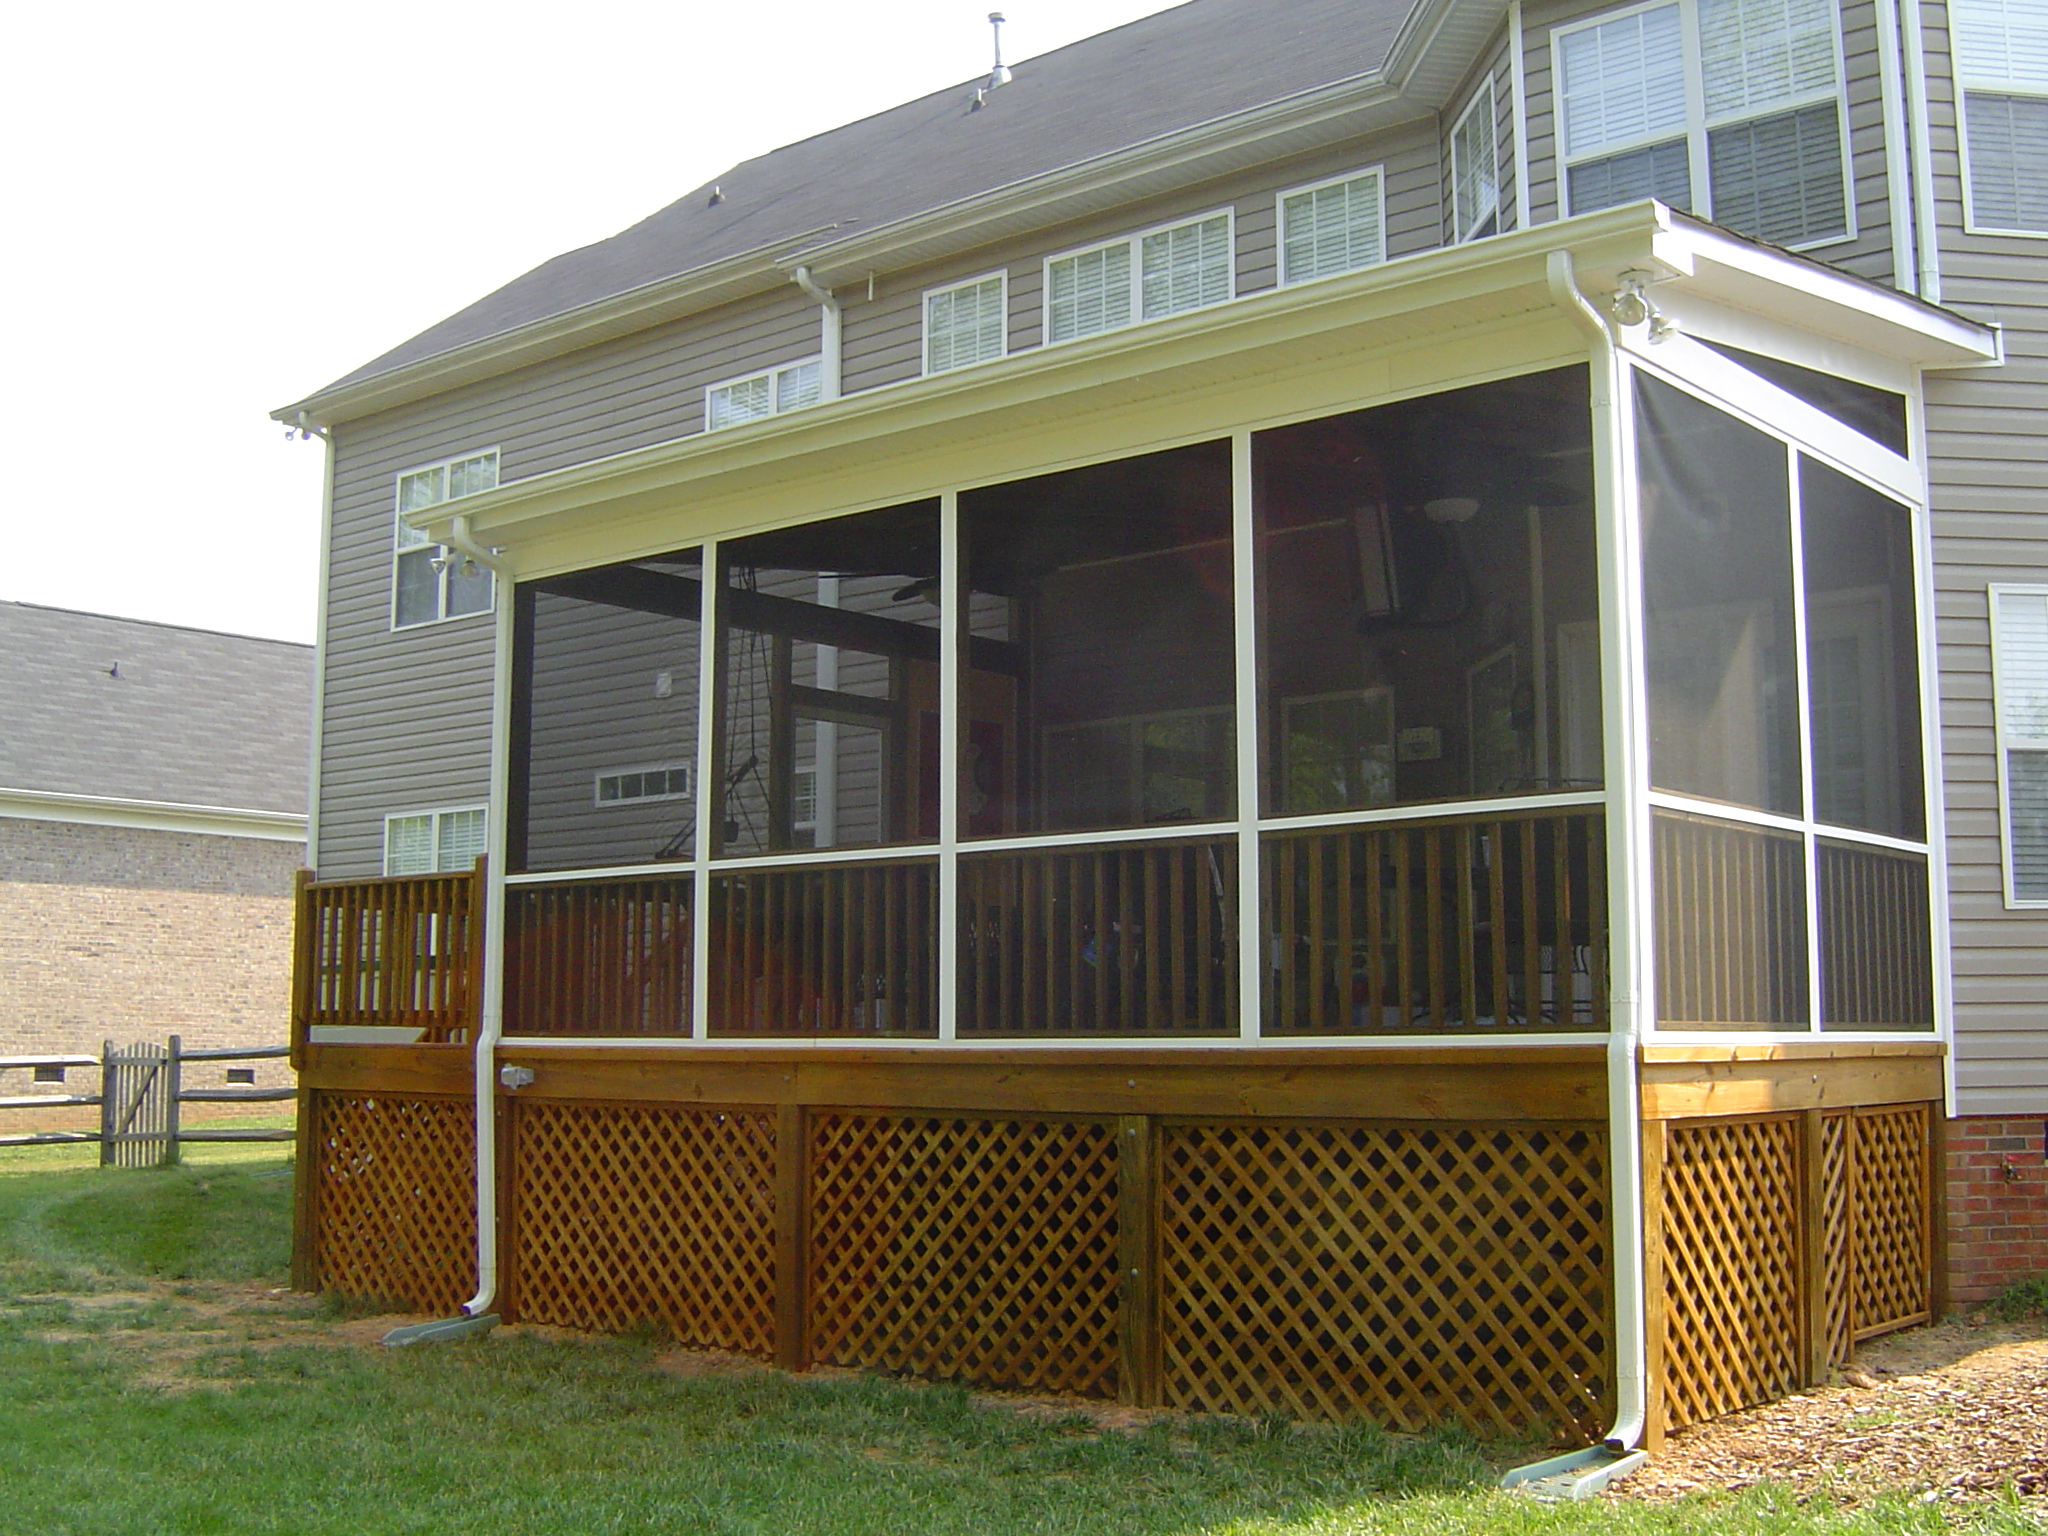 Charlotte nc designers choice com screen porches screen porch screened porch screened porches Screened porch plans designs